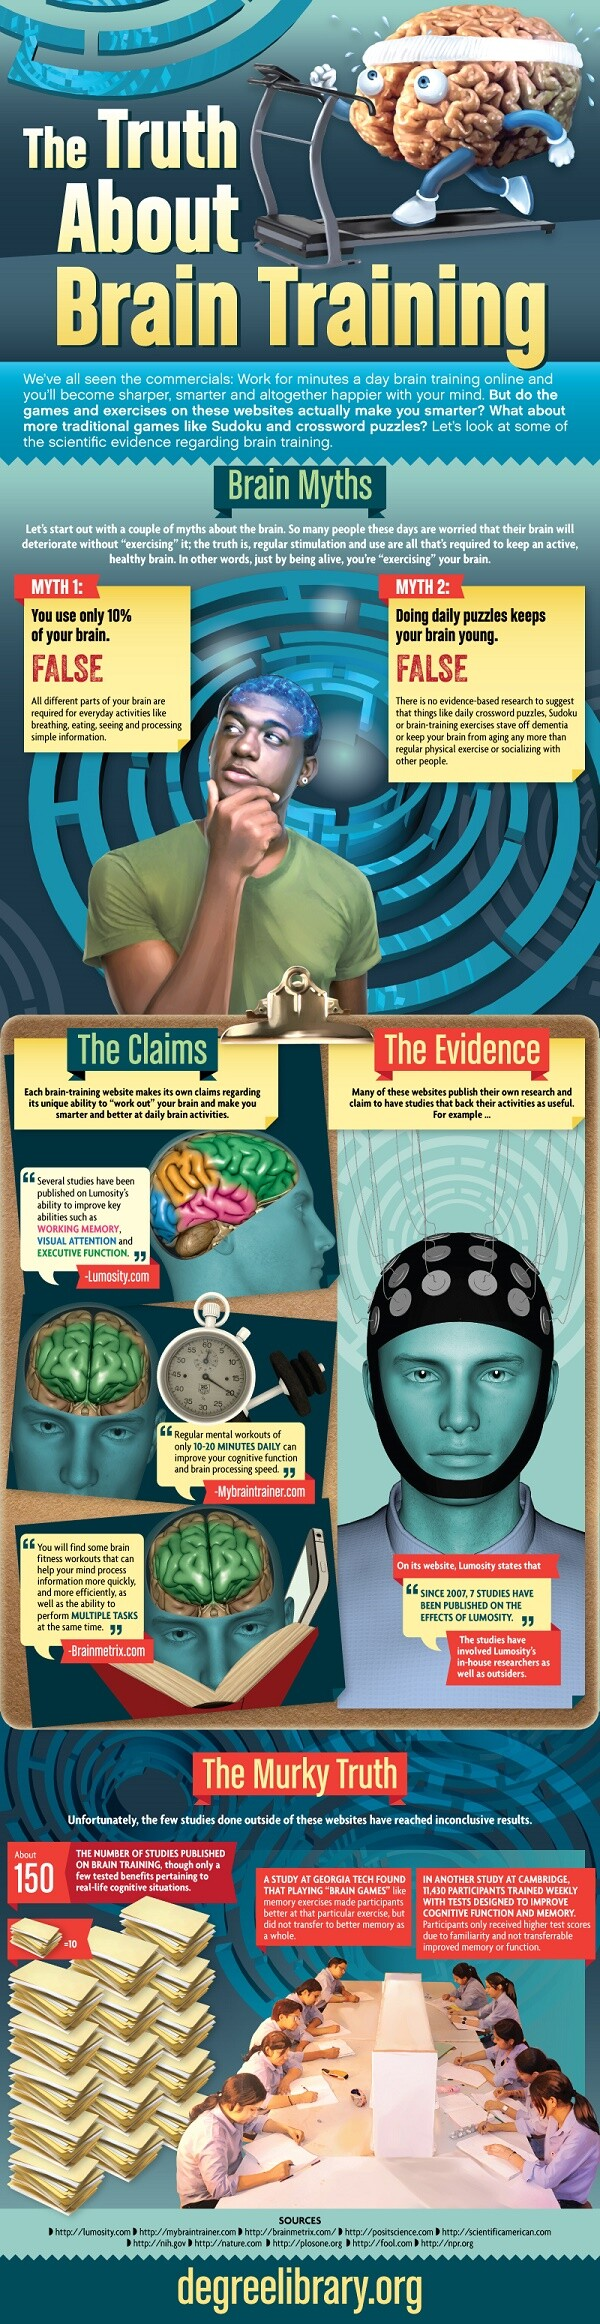 The-Truth-About-Brain-Training-Infographic